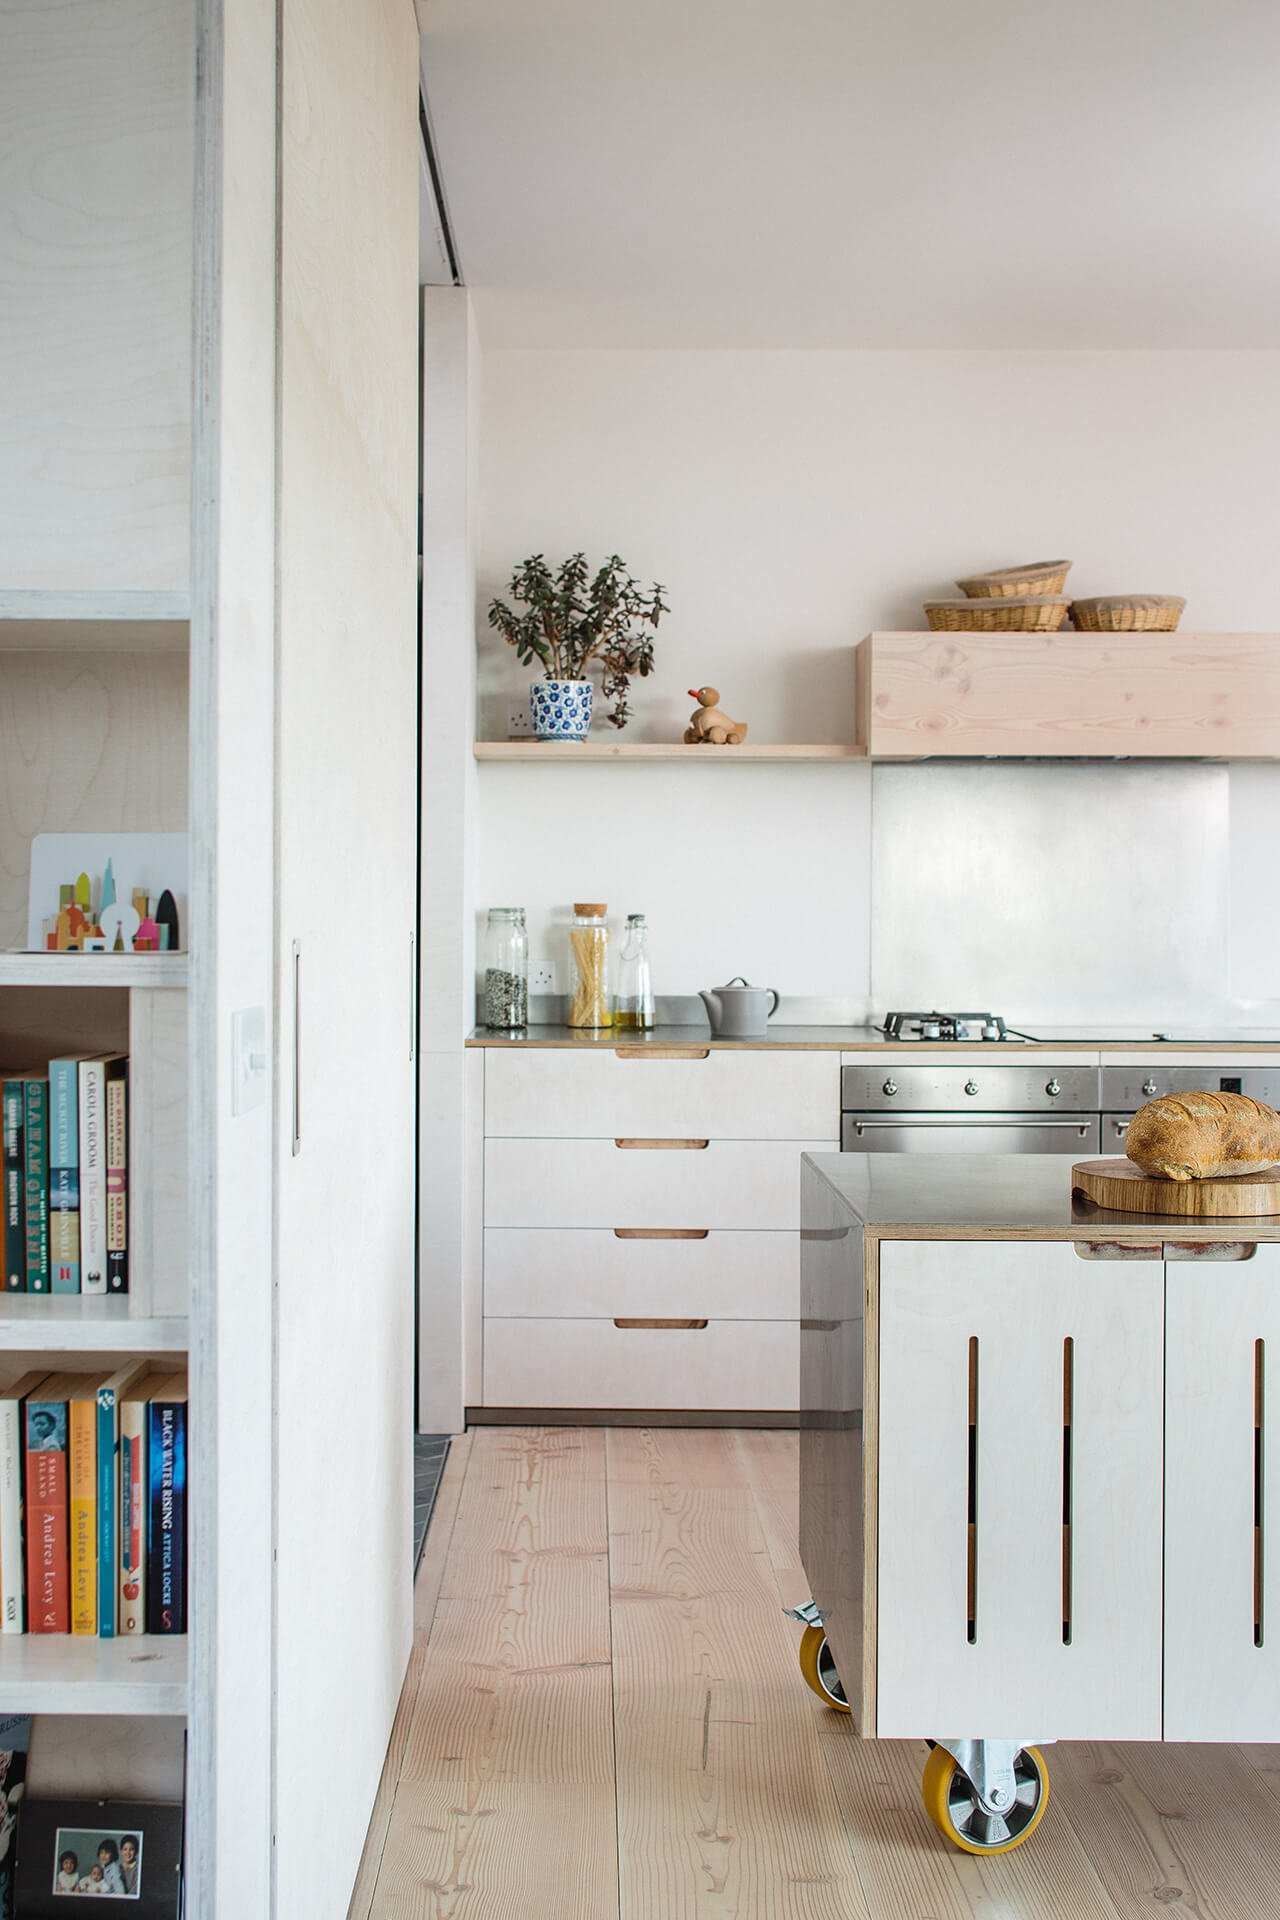 Contemporary Eco Kitchen with movable island on castors